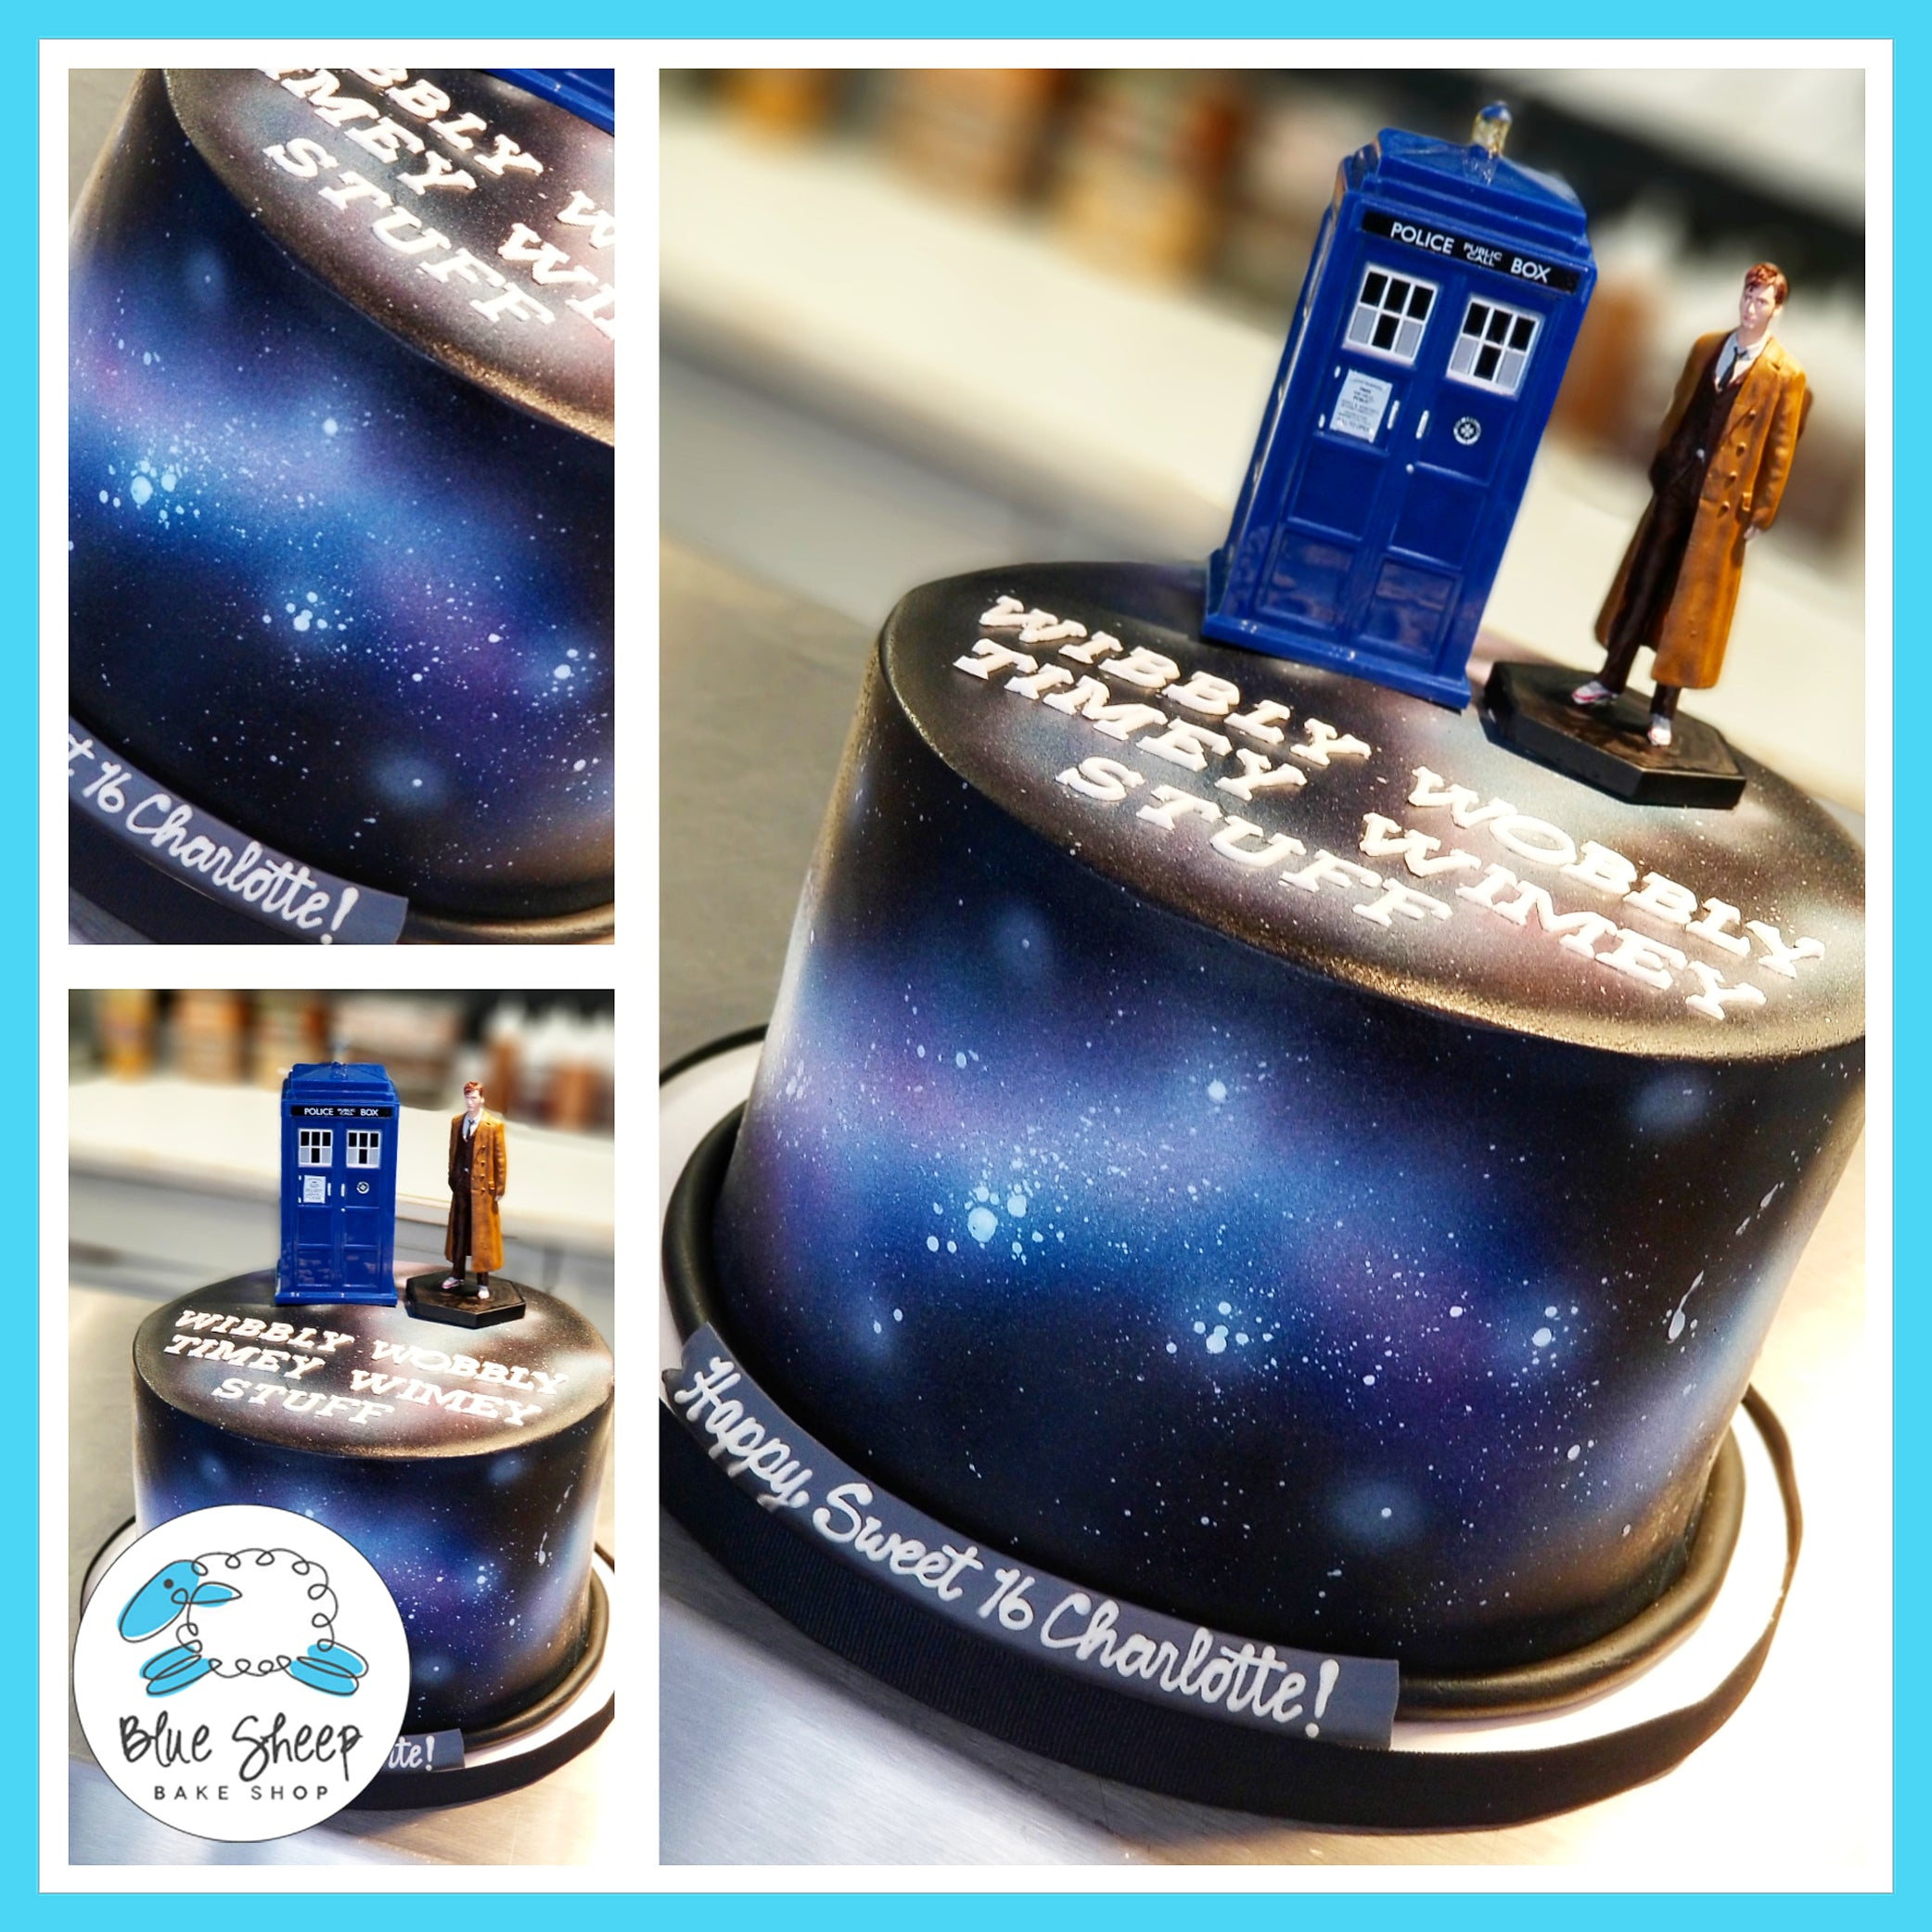 Pleasing Dr Who Birthday Cake Nj Blue Sheep Bake Shop Funny Birthday Cards Online Inifofree Goldxyz